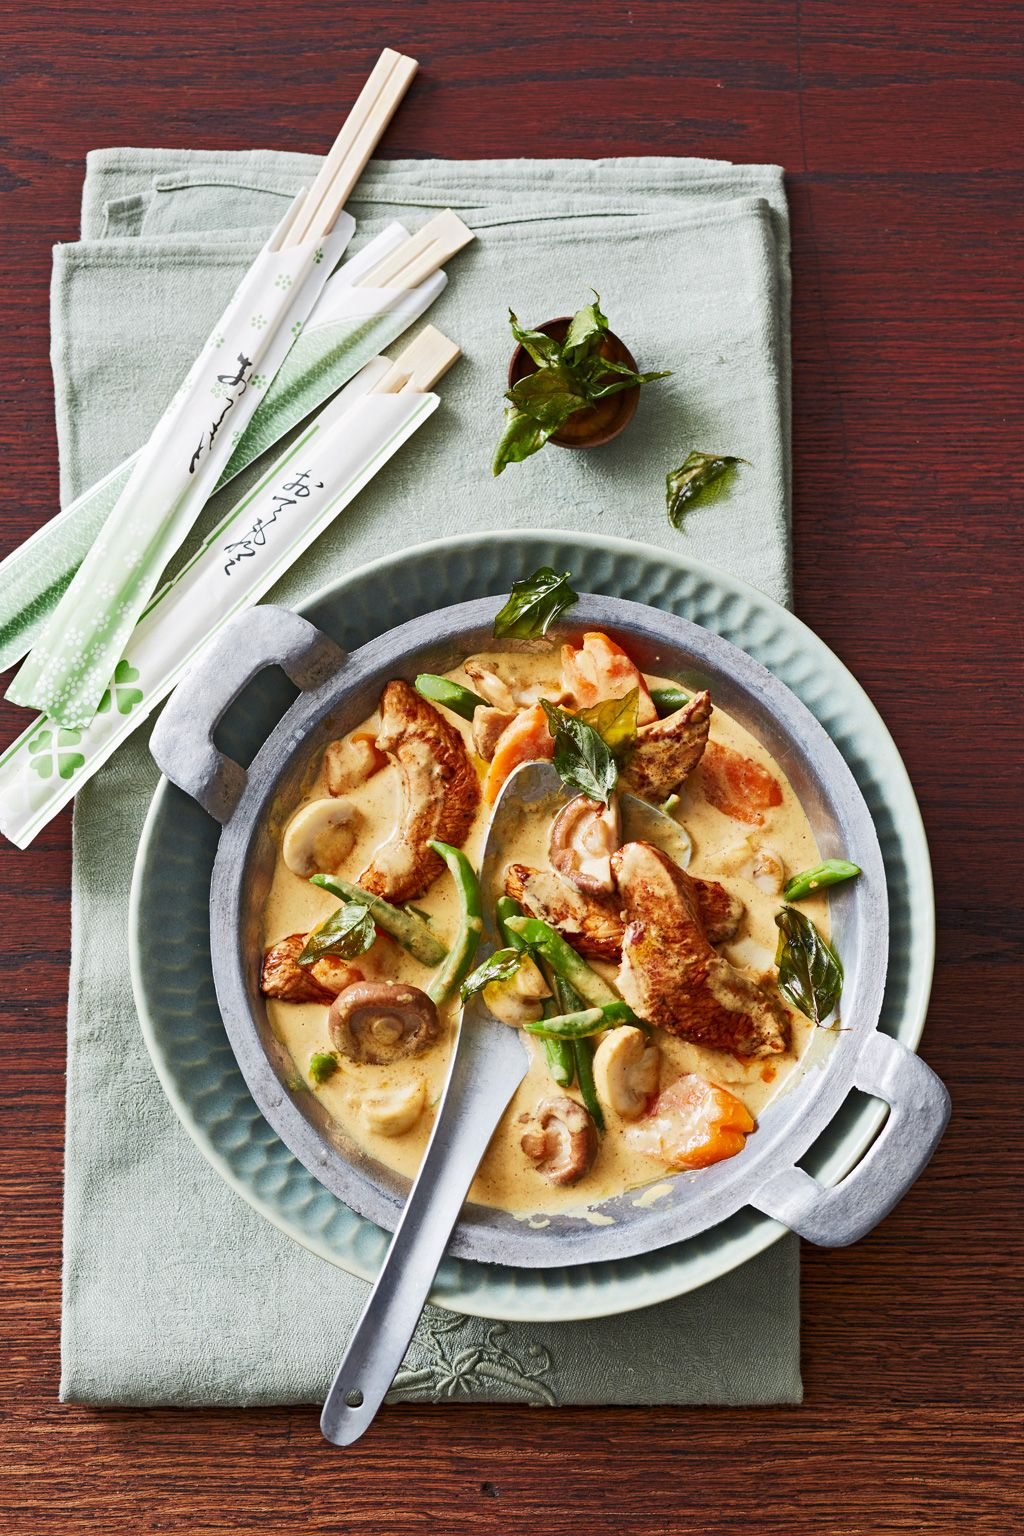 Photo of Thai wok pan with coconut milk from Anghi | chef